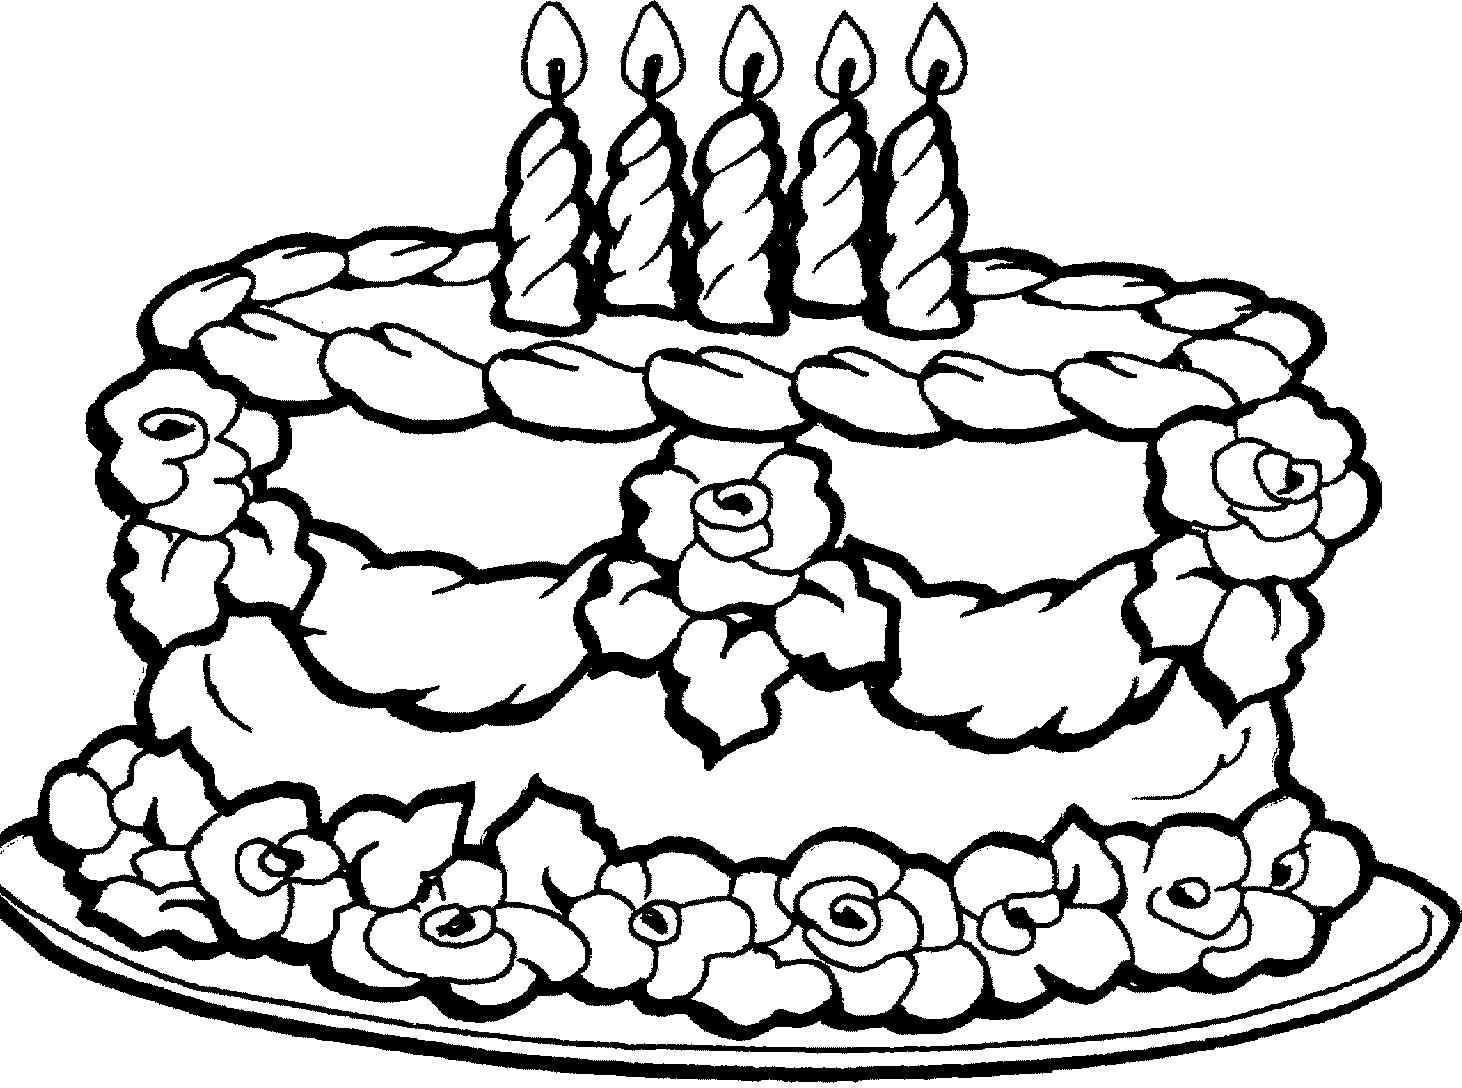 pictures of birthday cakes to colour in ; coloring-pages-of-cakes-beautiful-birthday-cake-page-80-in-free-colouring